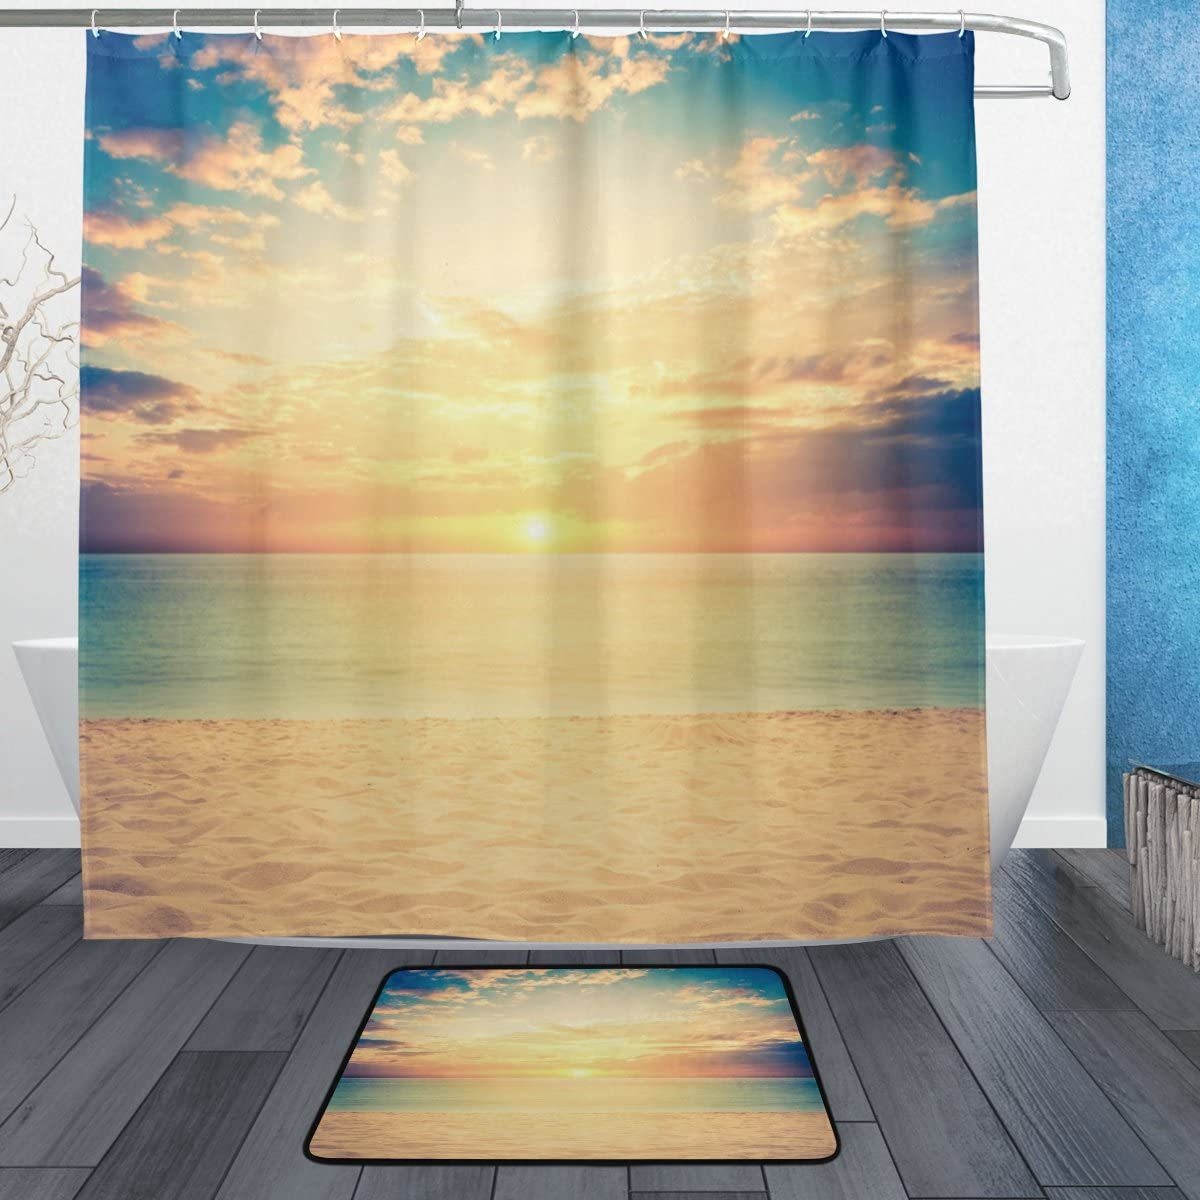 ALAZA Retro Sunset Ocean Beach Waterproof Polyester Shower Curtain for Bathroom 72 x 72 Inches, Home Decor Decoration Curtain 12 Hooks with Doormat Set